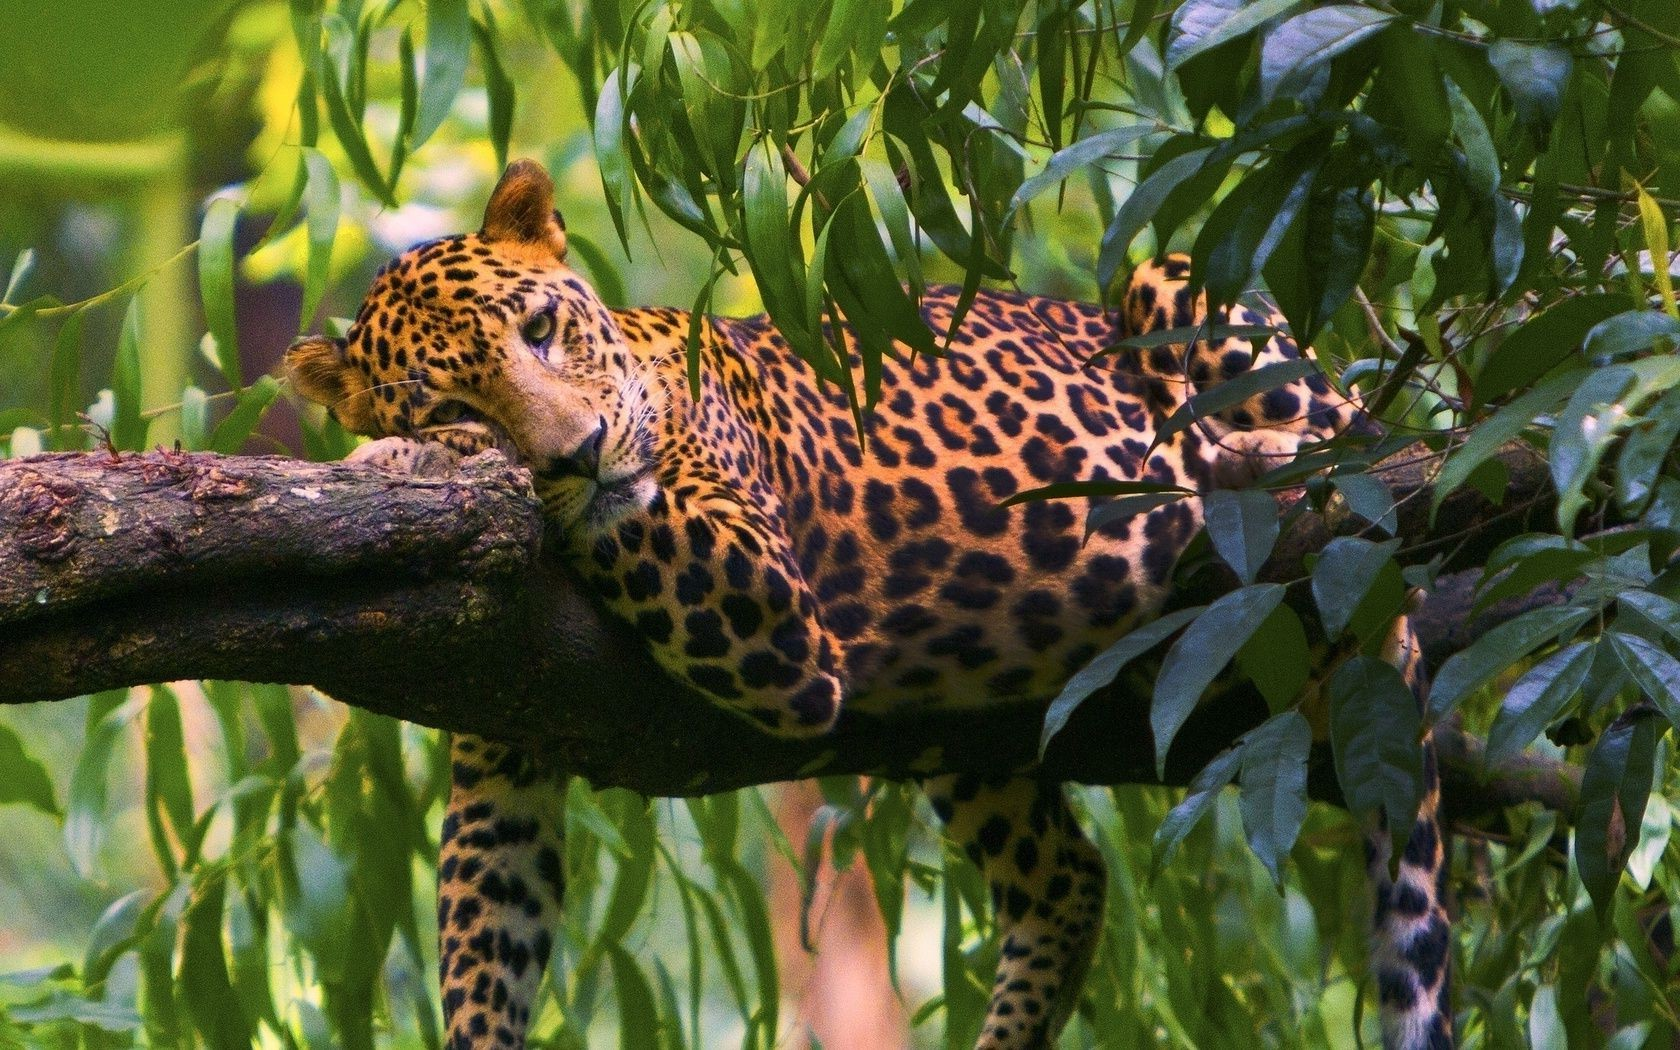 leopards wildlife nature jungle zoo wild animal exotic tropical outdoors leopard mammal